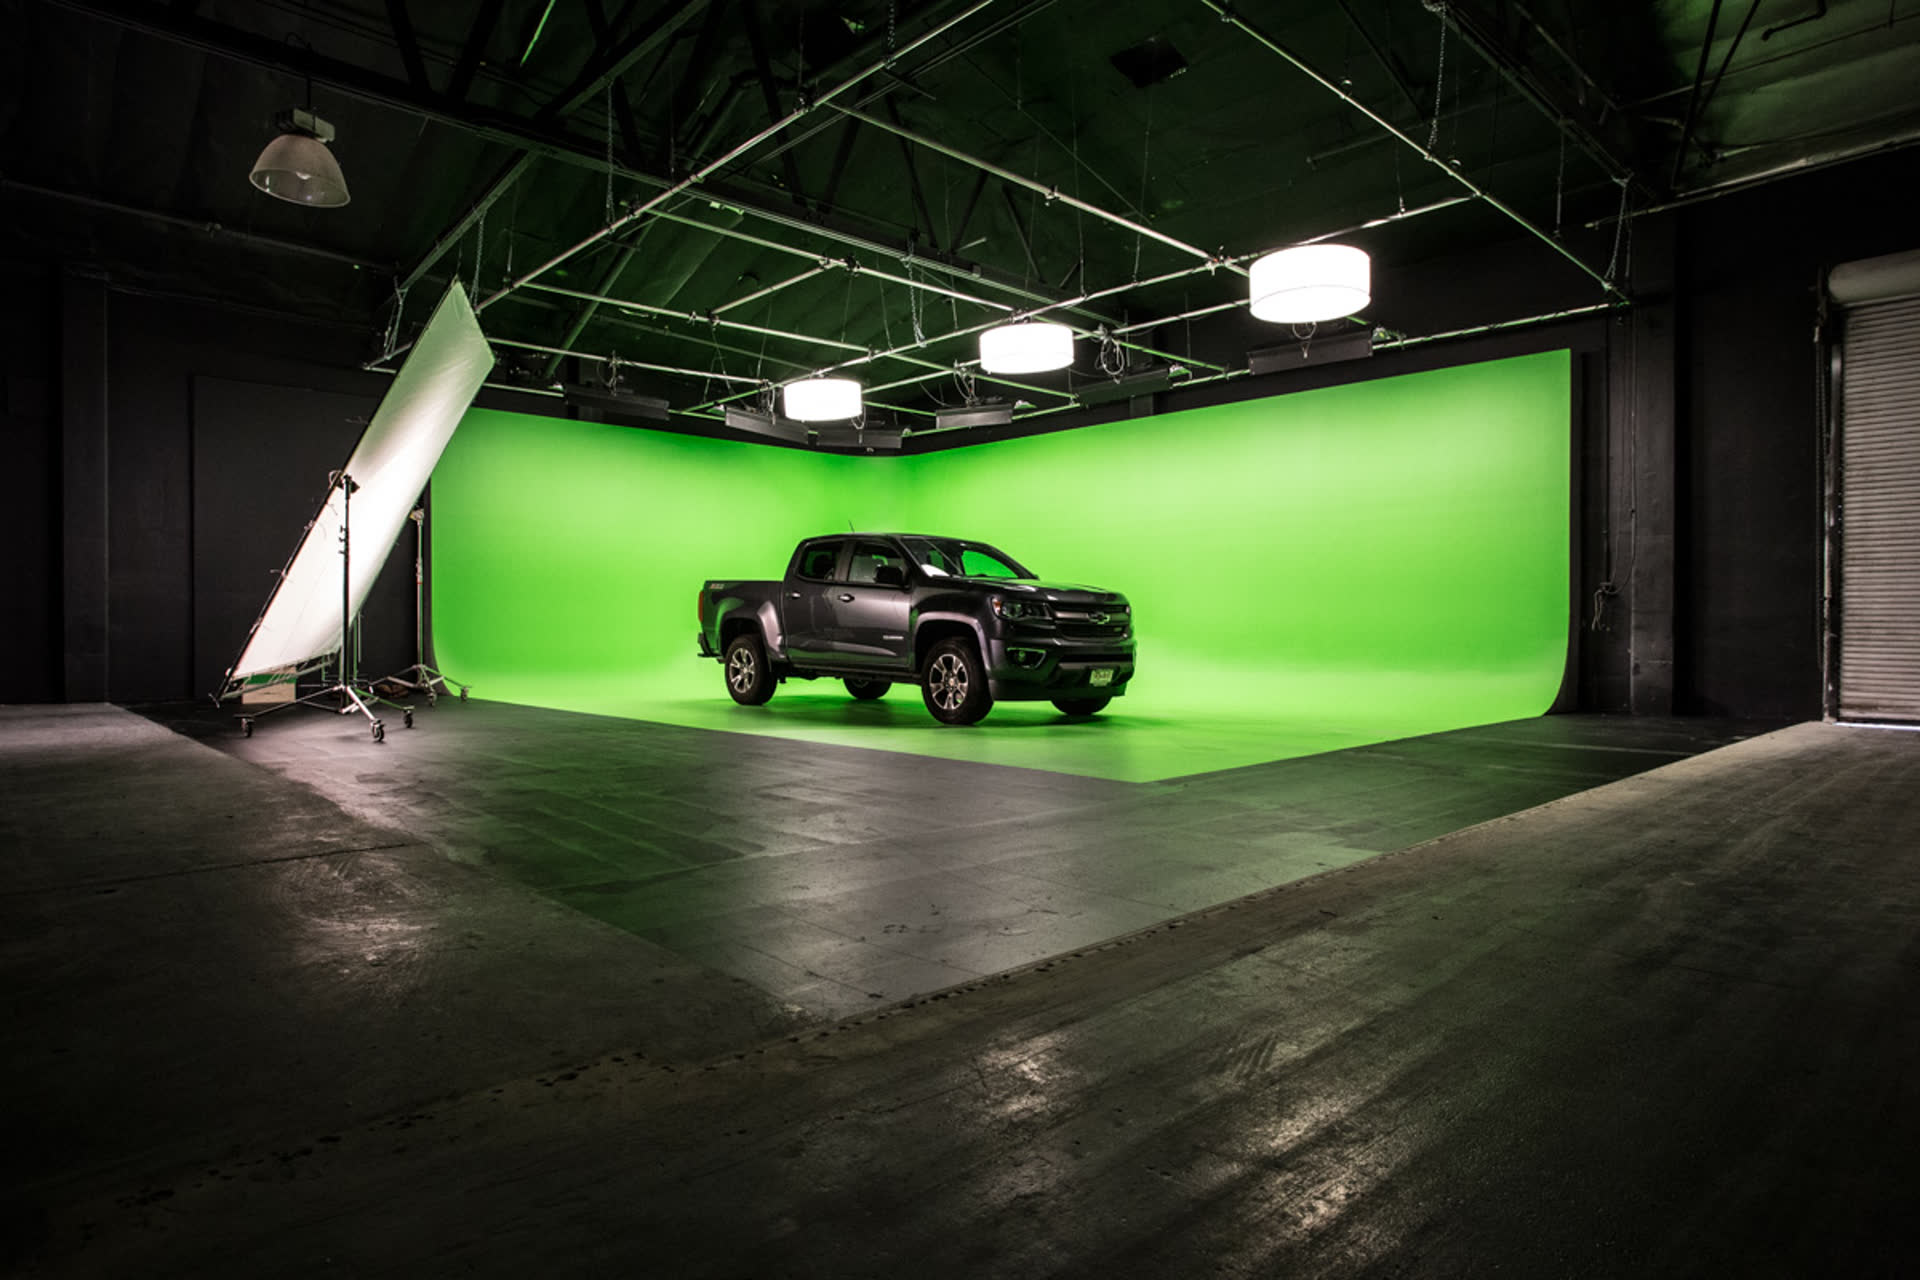 Green Screen spaces